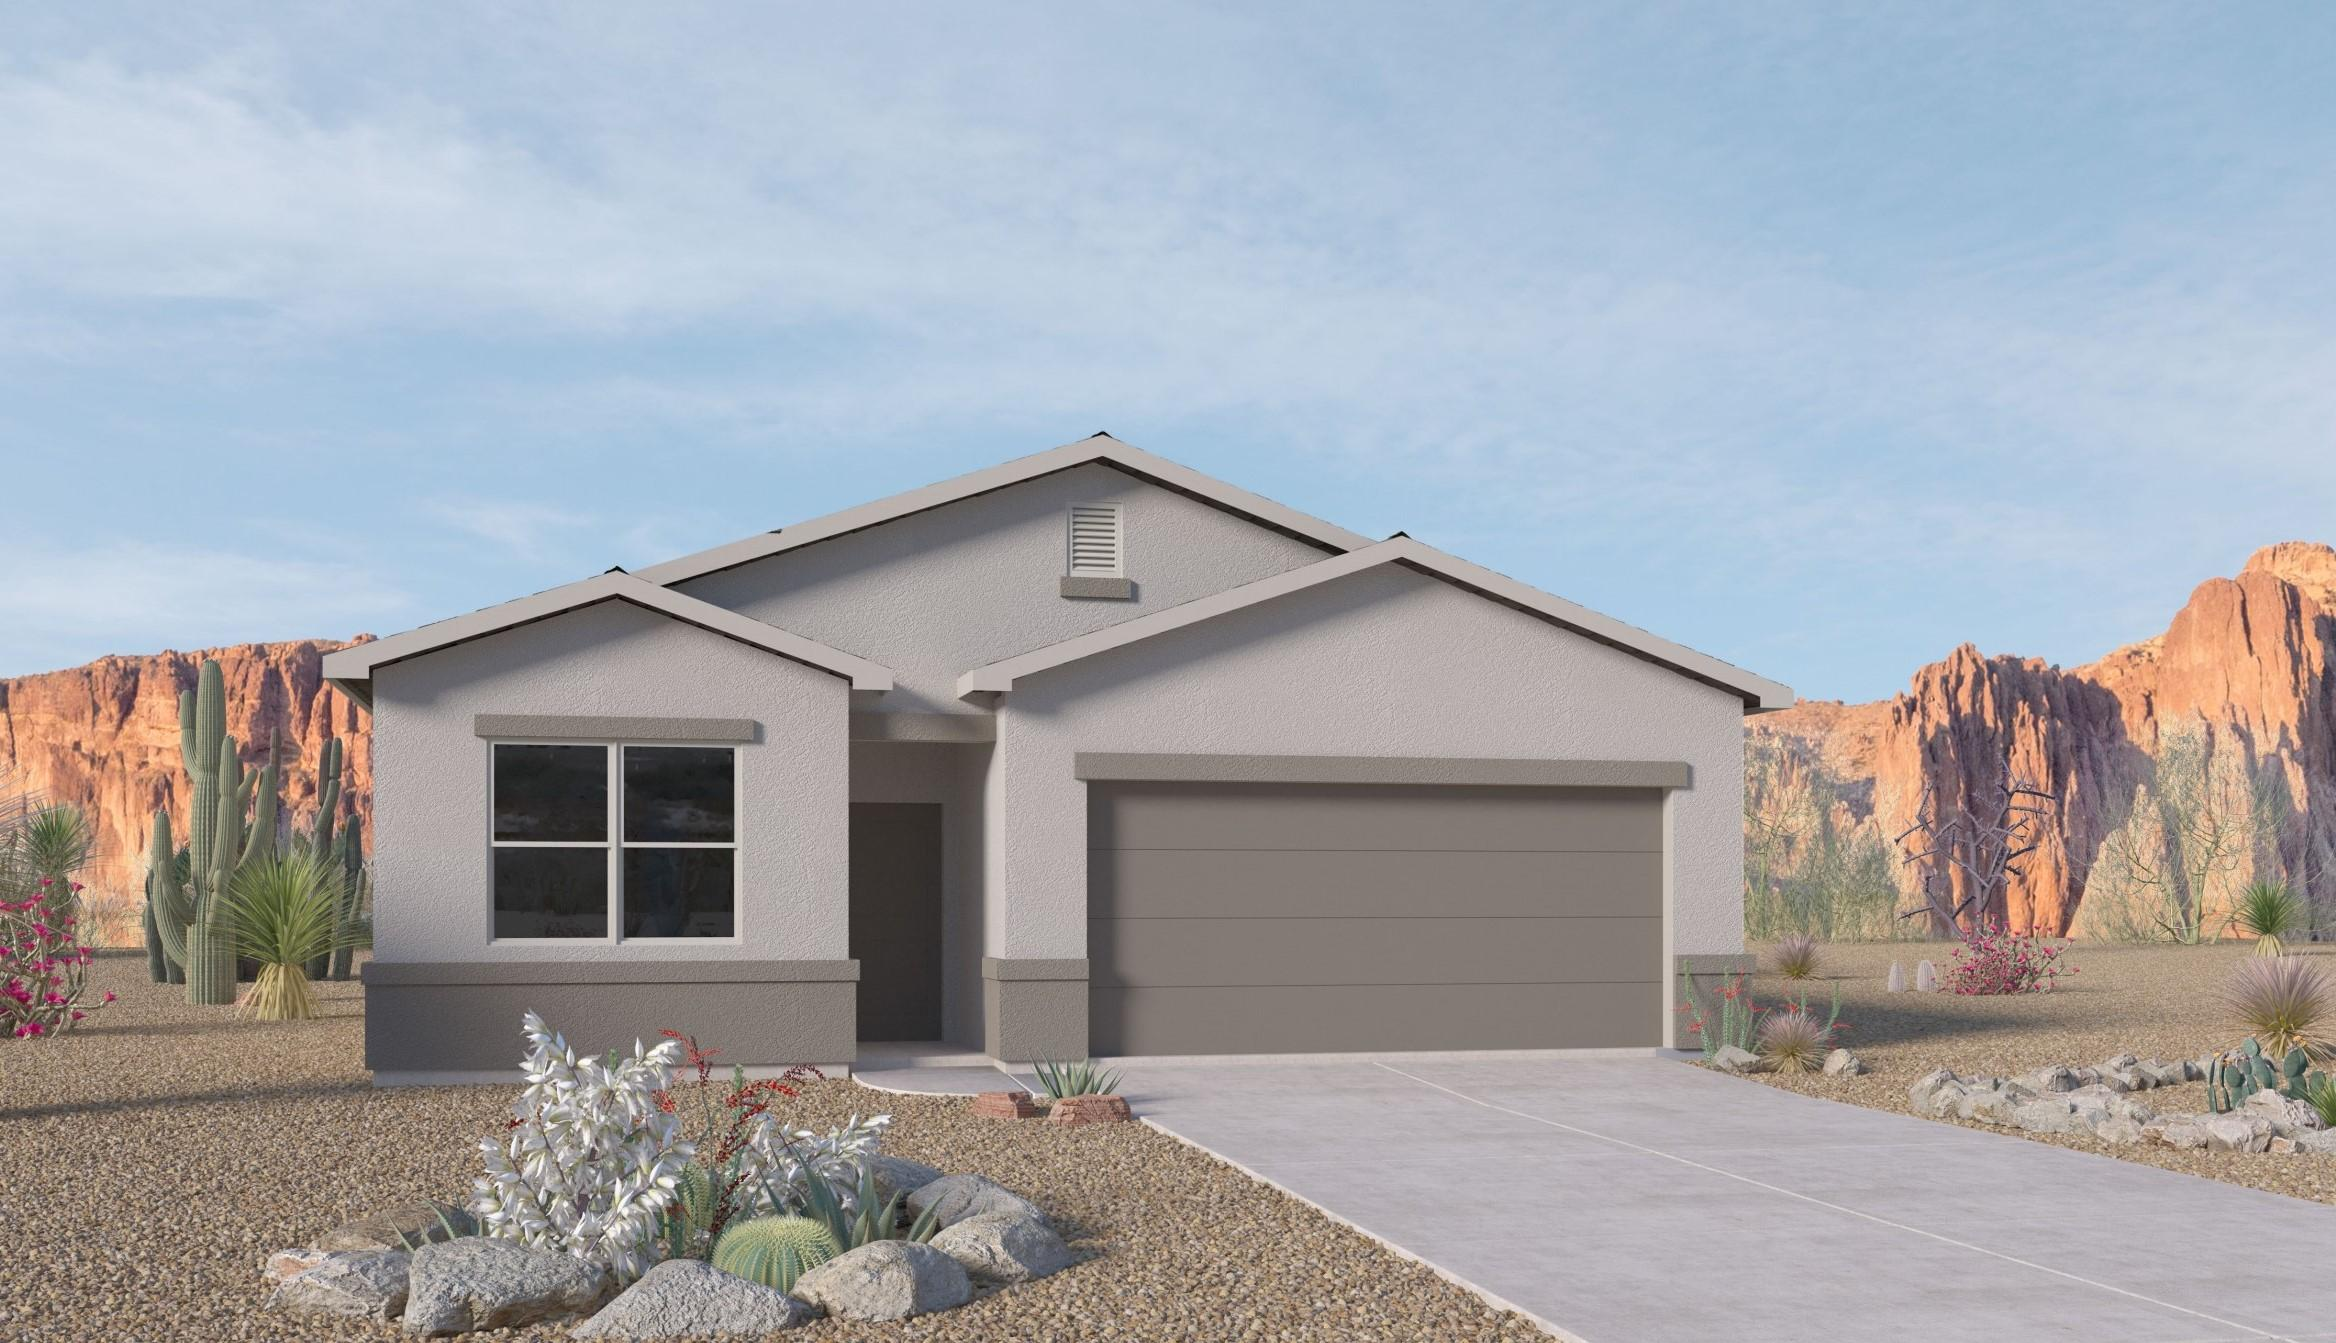 This brand new ''SMART'' home should be completed and ready for your family to enjoy in Jan. Granite counter tops give a lovely touch to the Dark Wood Cabinets that really show off the Black Whirlpool appliances.  18 x 18 floor tile in Kitchen, baths and laundry room. 9 foot ceilings & Blinds throughout home.  Yes, all brand NEW.  The ''CHAMA'' is an open floor plan with 4 bedrooms.  The family room looks out over the covered patio to the back yard.   Solcito is close to swimming pool, library, soccer fields, equestrian,  ice skating rink, schools, shopping and restaurants.  Come see why so many folks are making Solcito their ''NEW'' neighborhood. Ask about move in package, washer/dryer, refrigerator and garage door opener.  (Photos of previous model home)